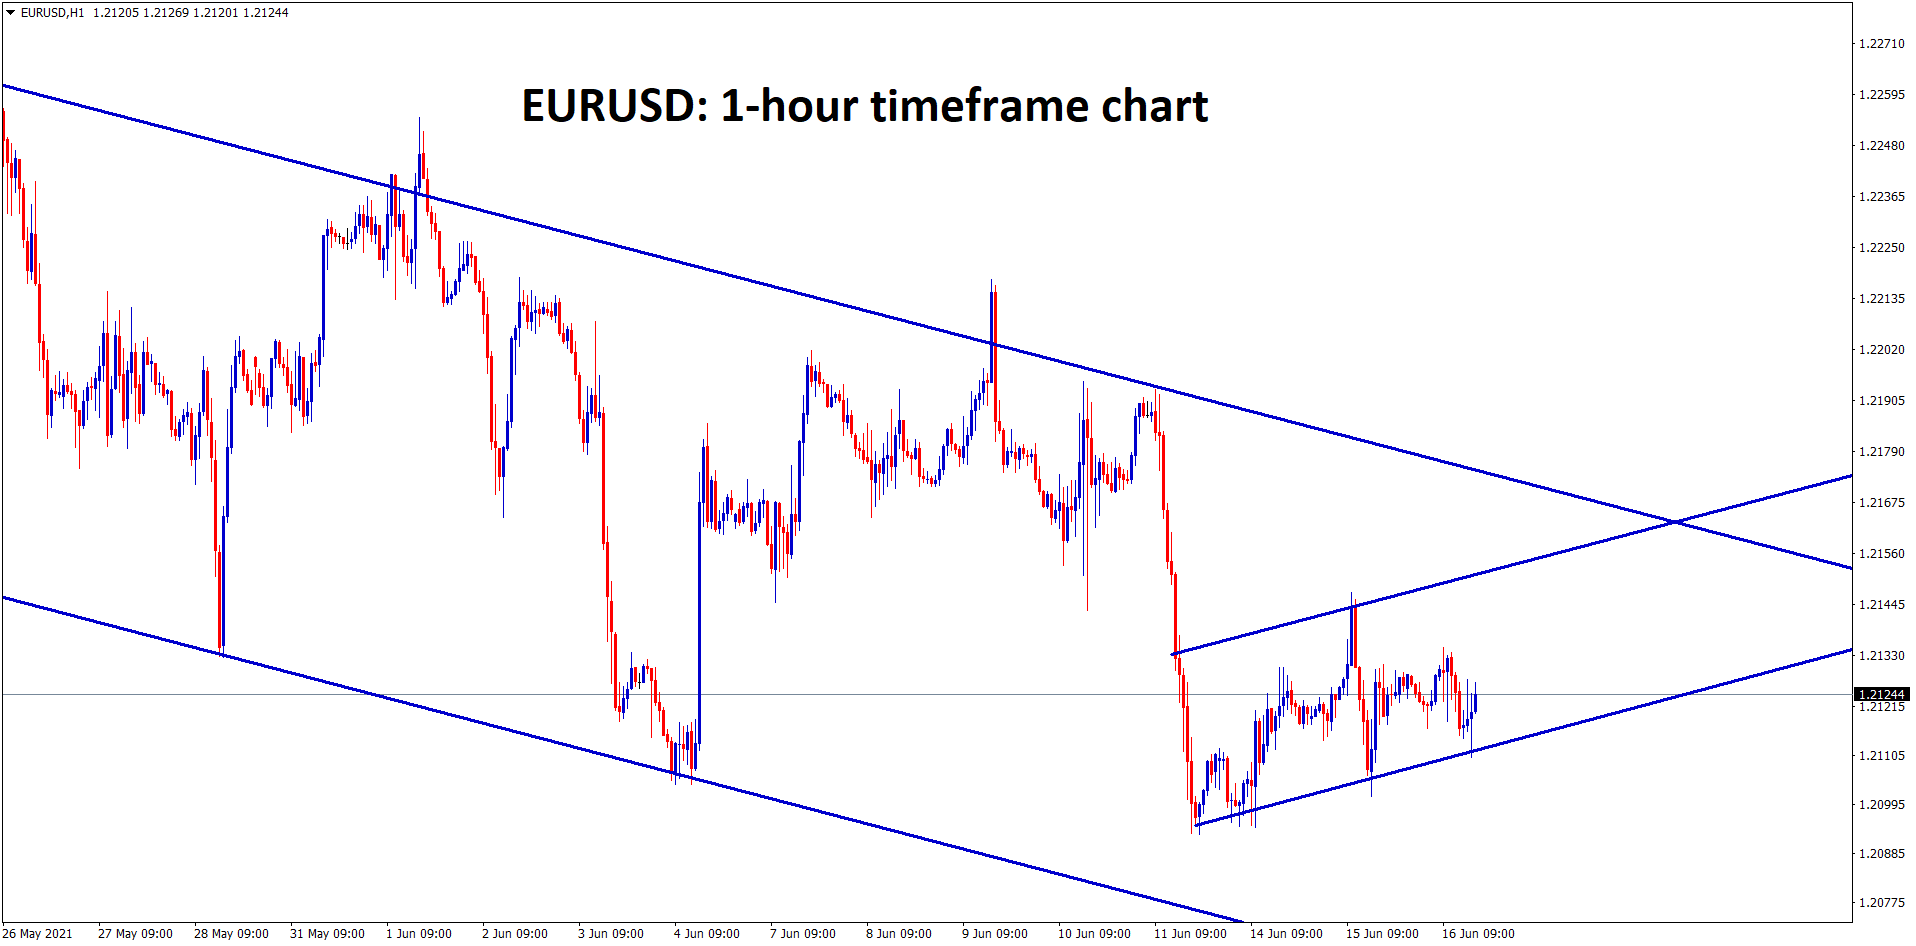 EURUSD is moving between the minor channel ranges